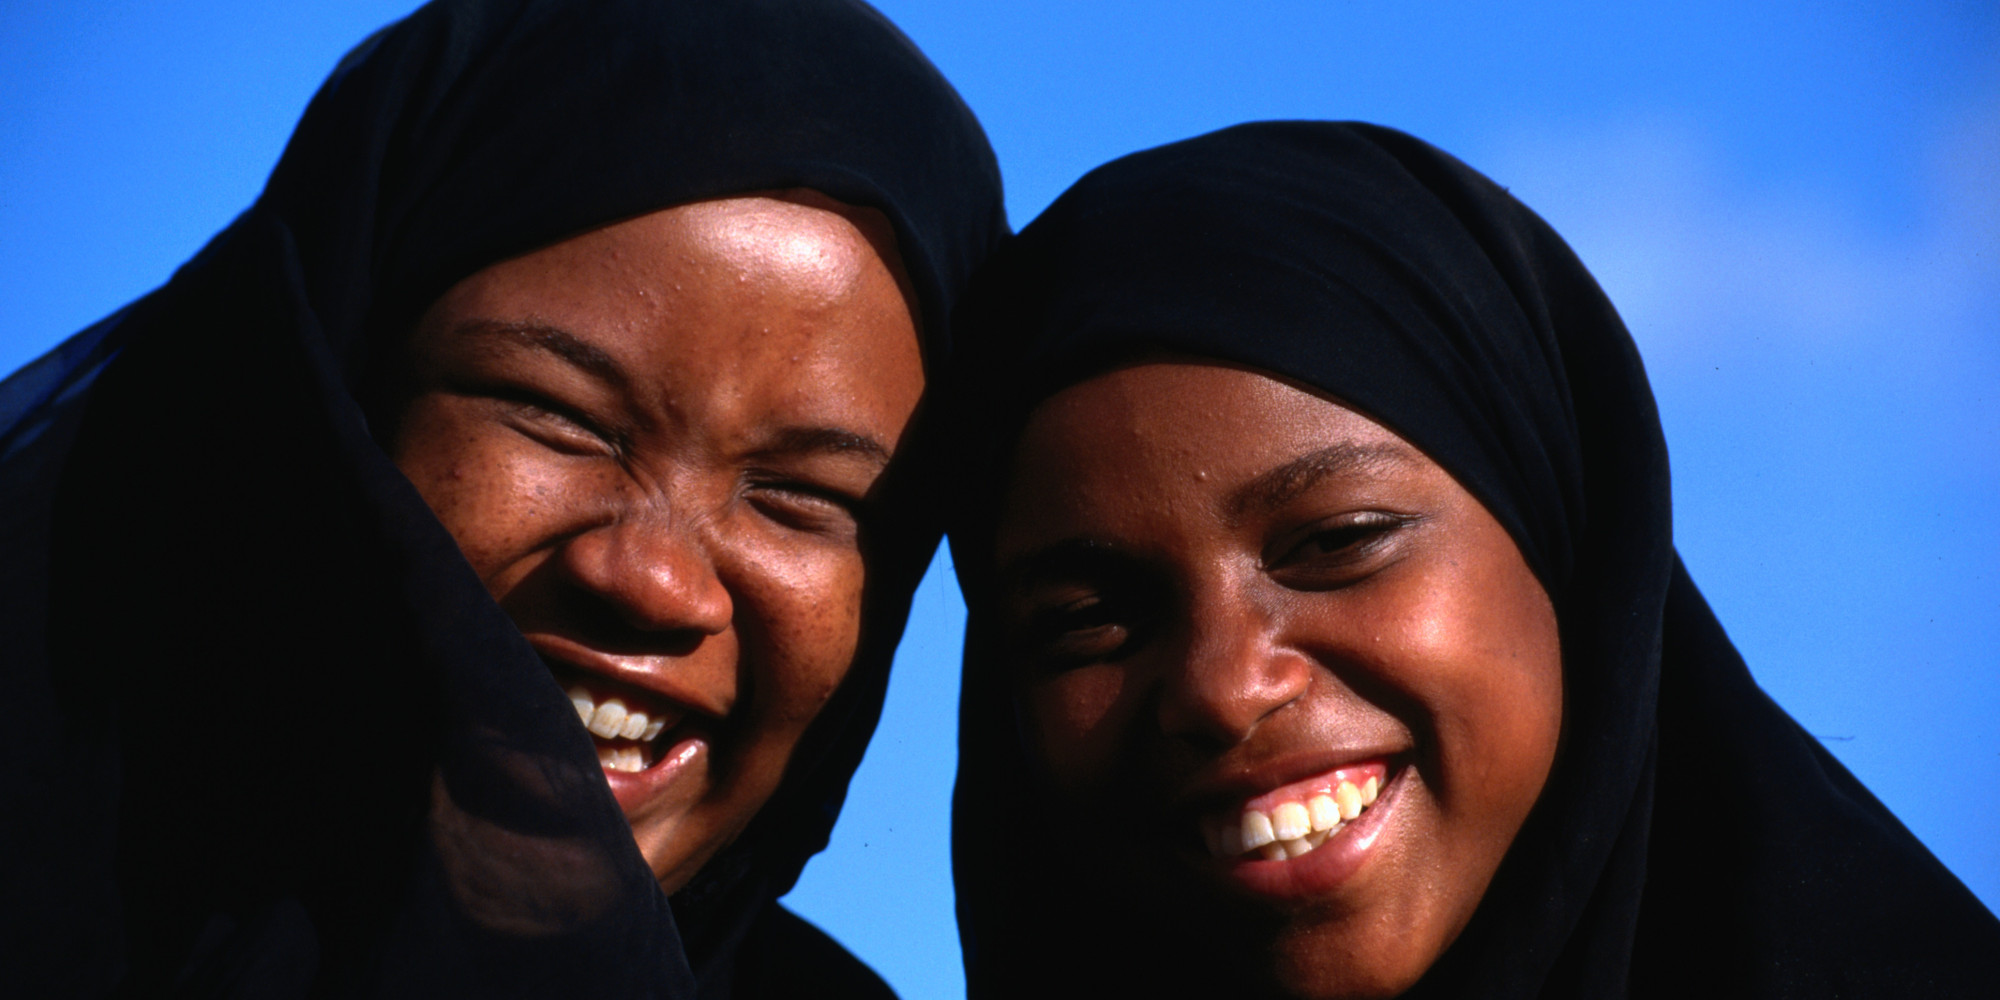 platina single muslim girls Meet african american muslim men and women for marriage through chat rooms, messages, talk, pictures, video for free african american muslim marriage.